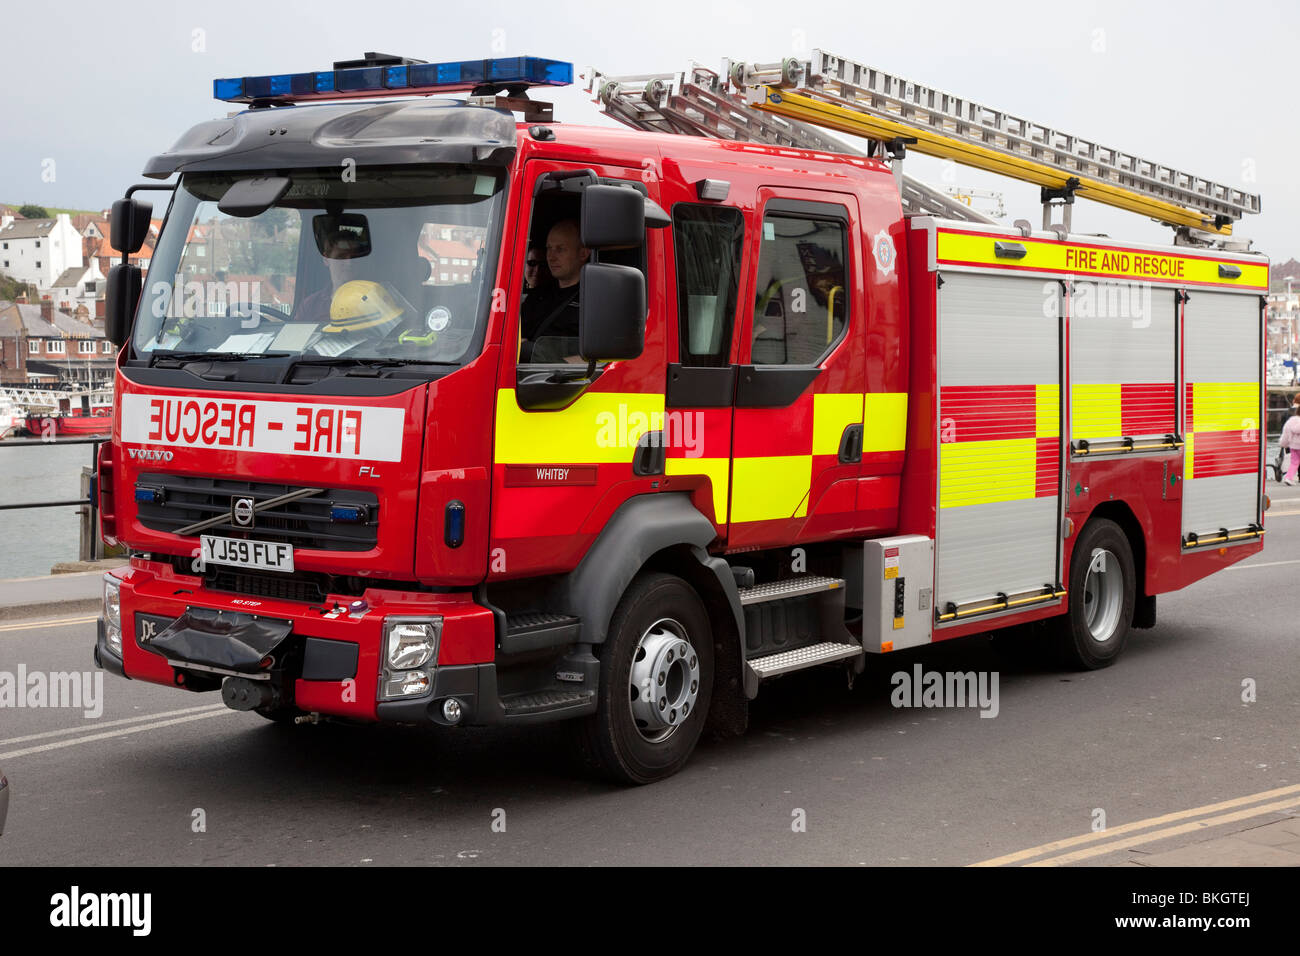 Whitby Fire & Rescue Engine, North Yorkshire, UK - Stock Image